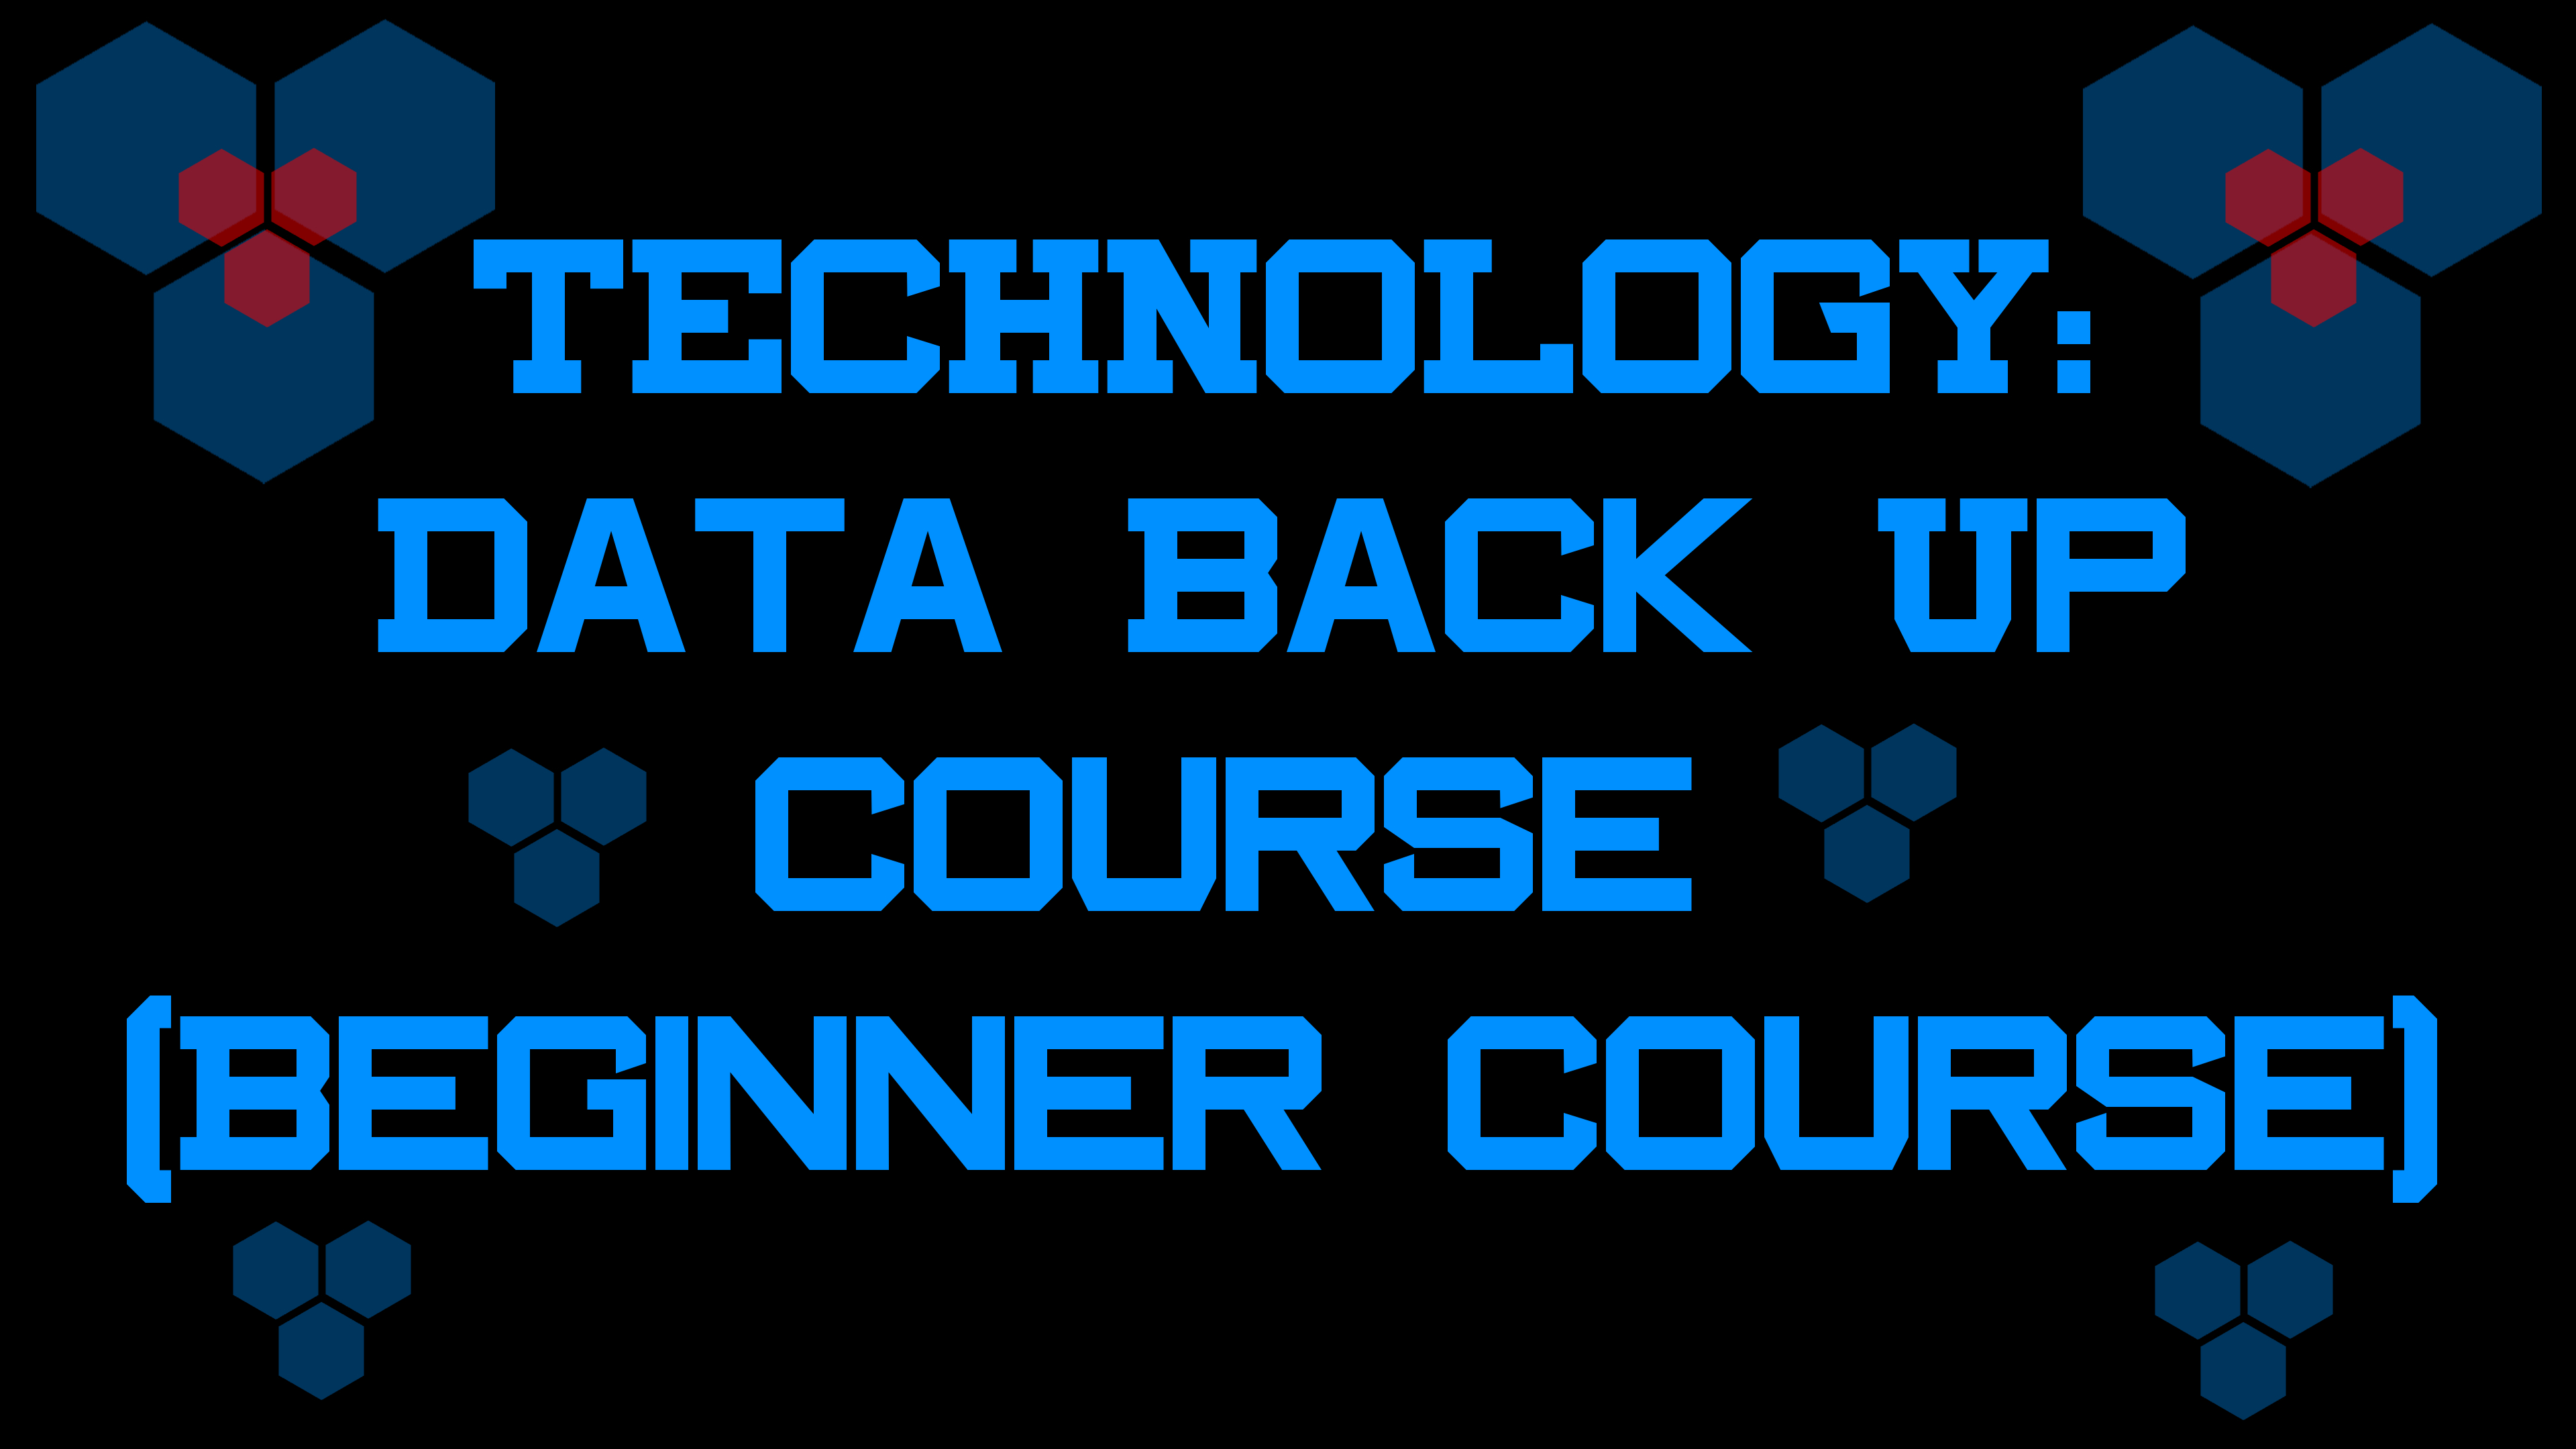 TECHNOLOGY: Data Back-Up Course